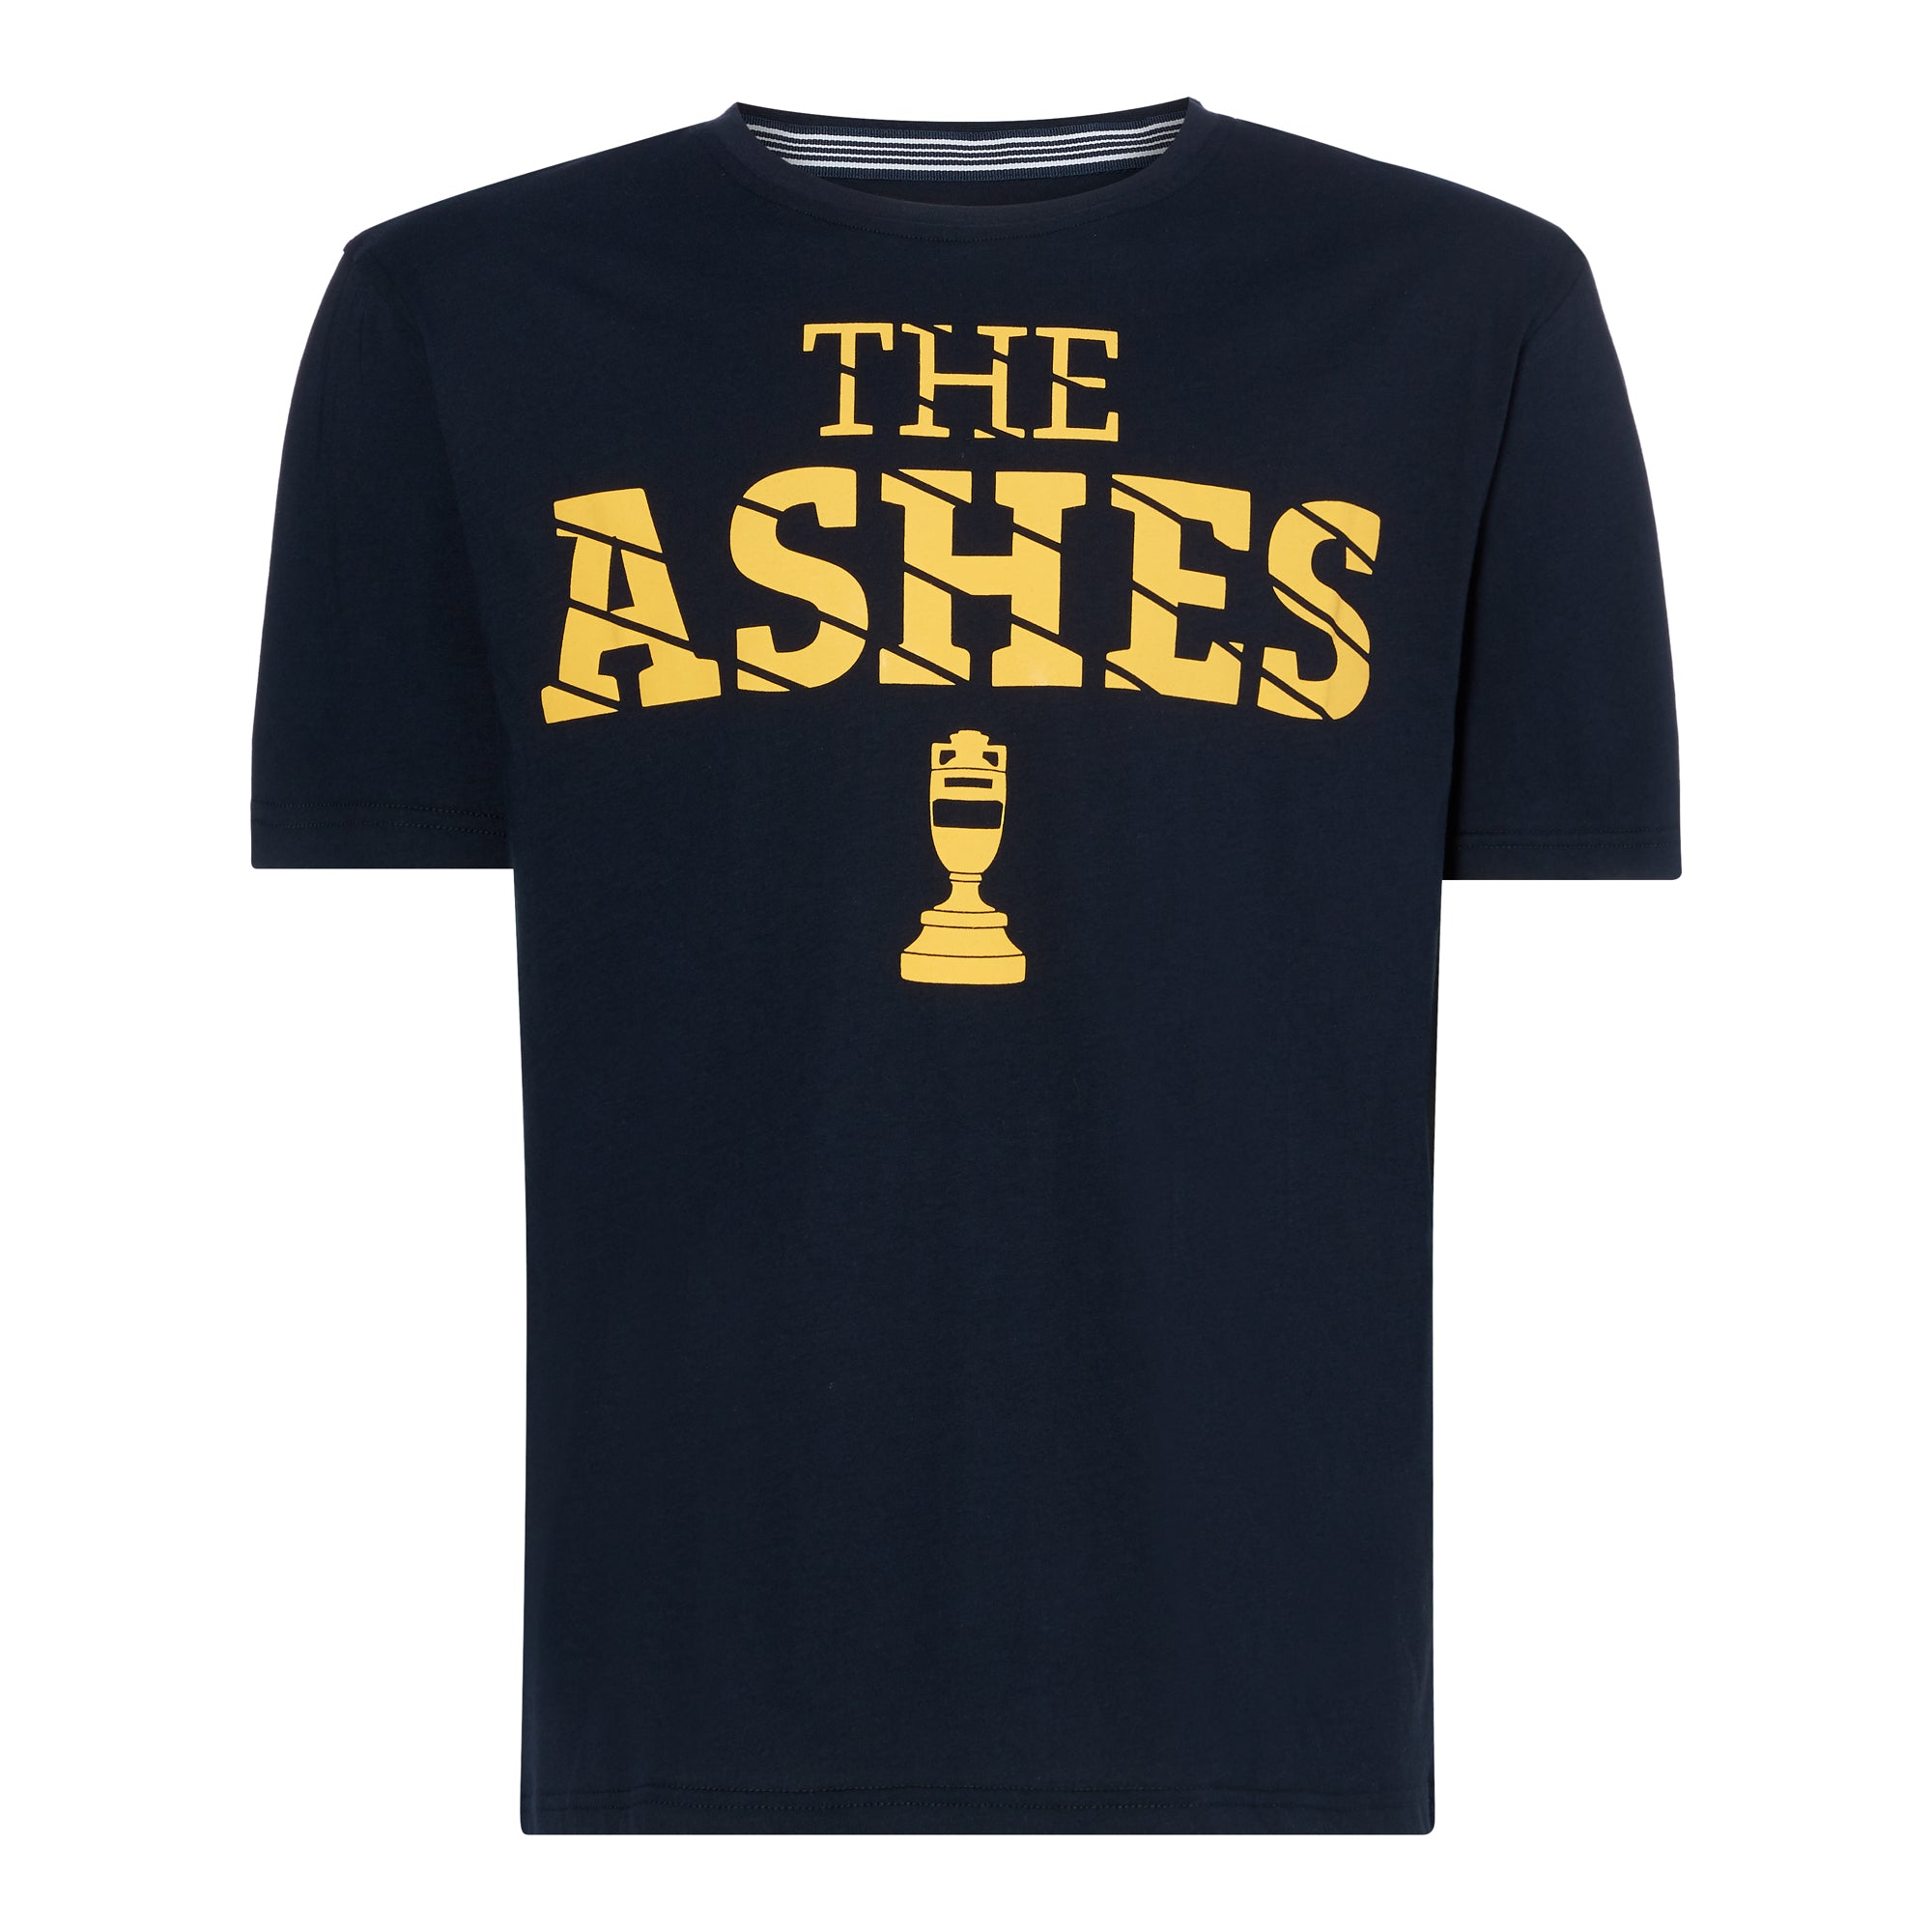 ASHES URN PUFF PRINT NAVY/YELLOW T-SHIRT